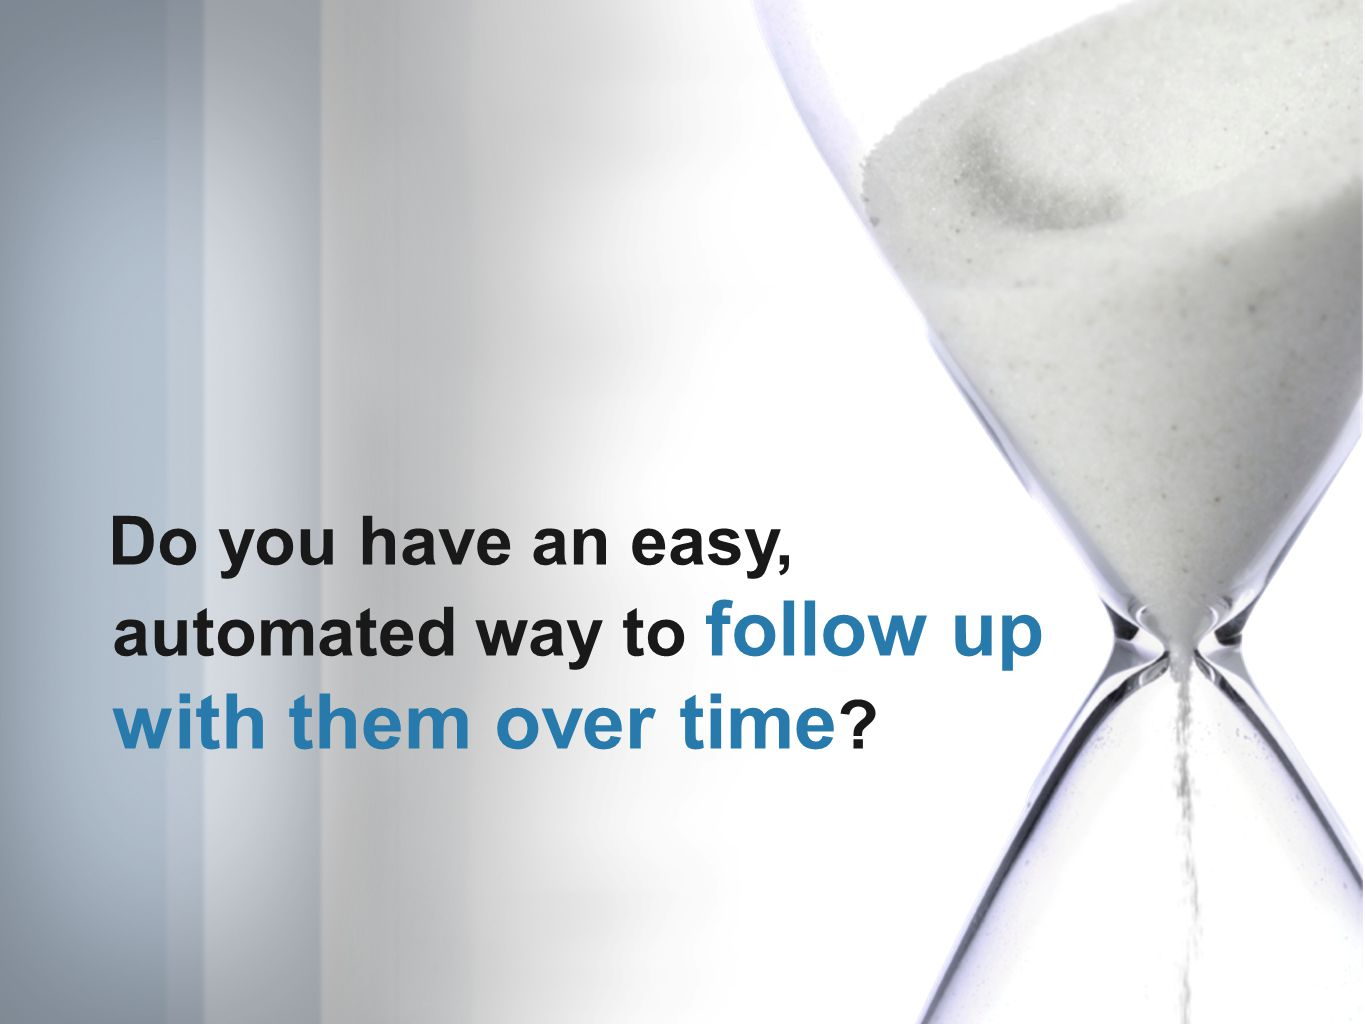 Do you have an easy, automated way to follow up with them over time